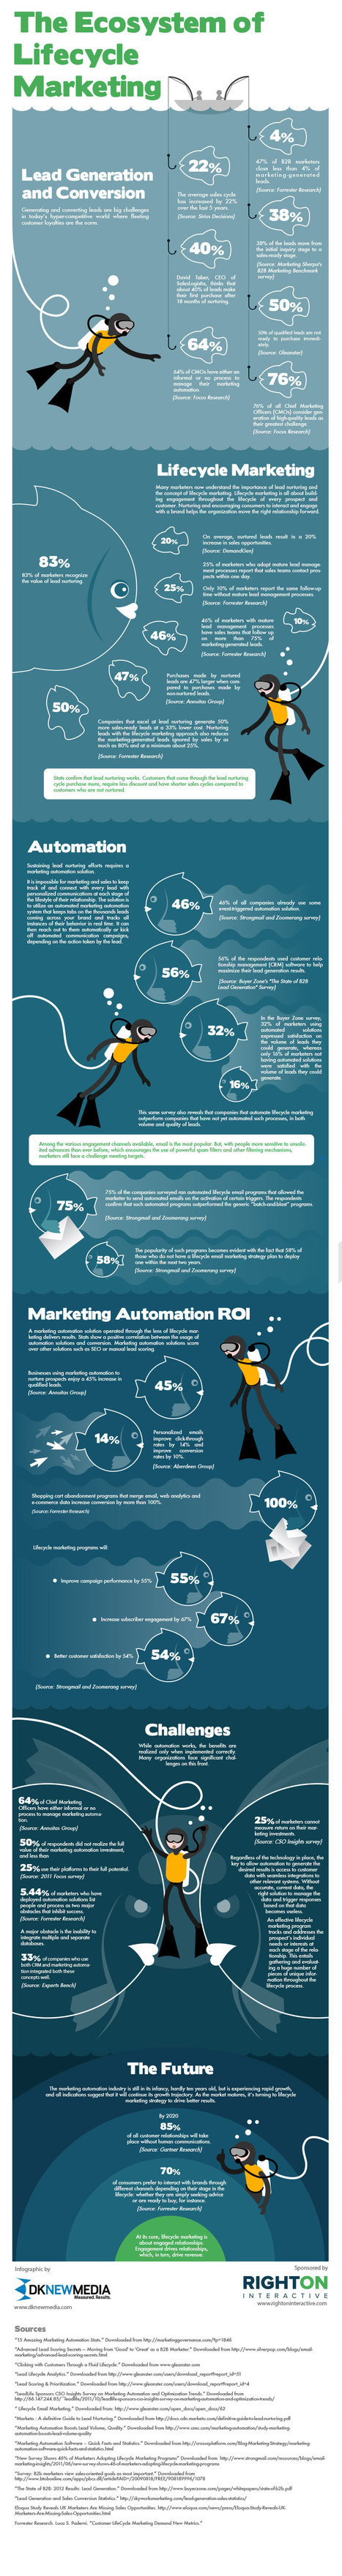 Ecosystem of Lifecycle Marketing Infographic | | Beyond Marketing | Scoop.it